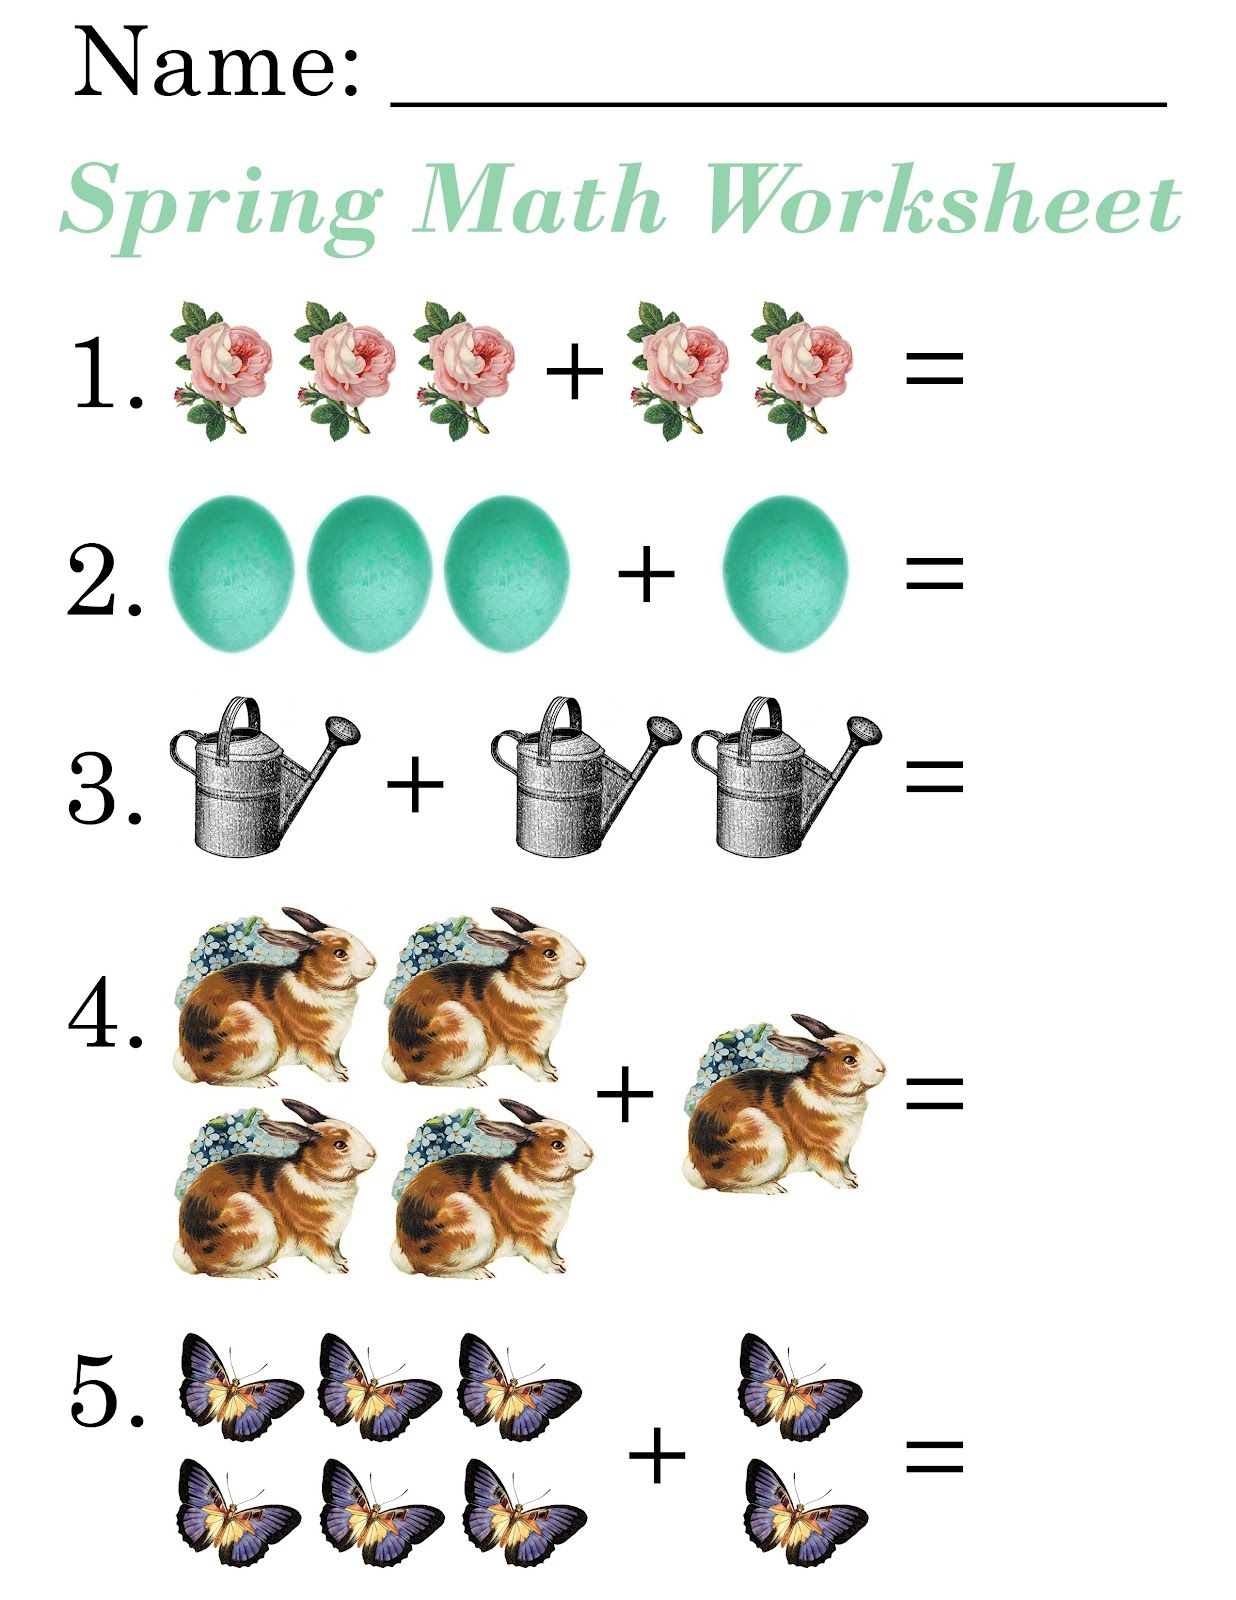 Lilac Lavender Kids Spring Math Worksheets – Elementary Worksheets About Math